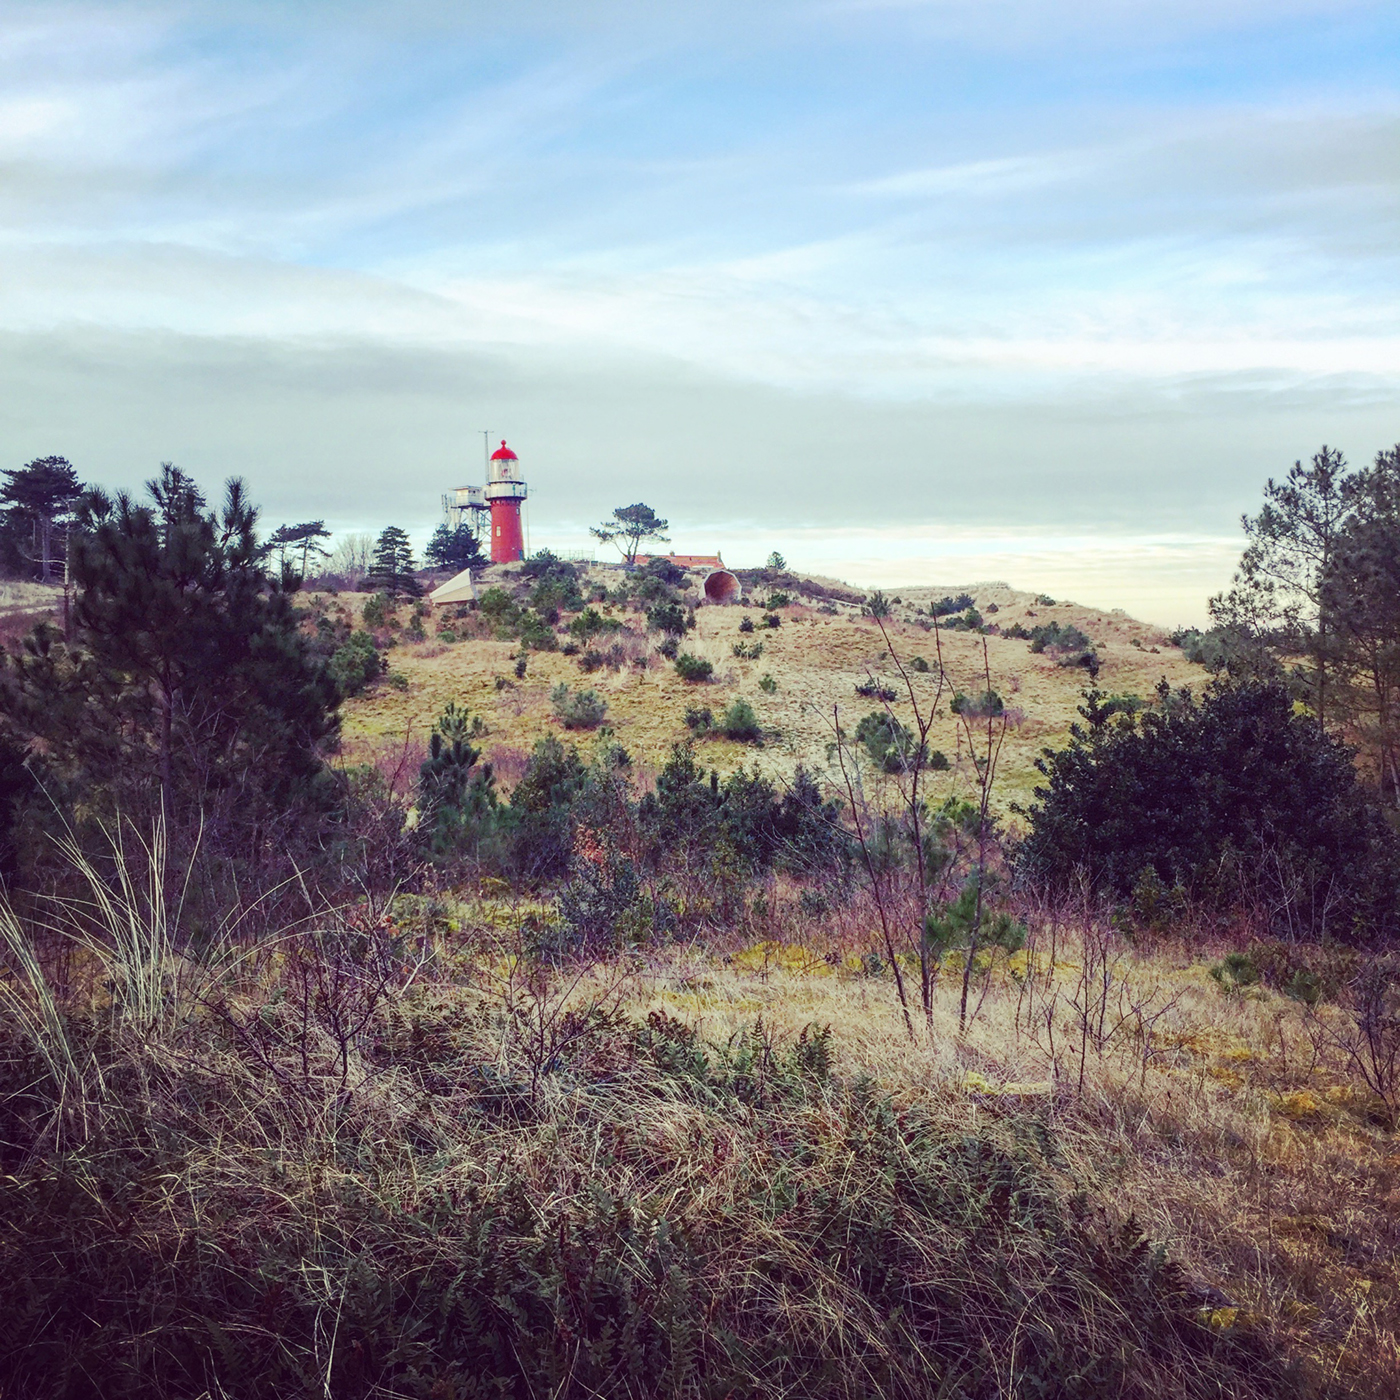 The light house of Vlieland